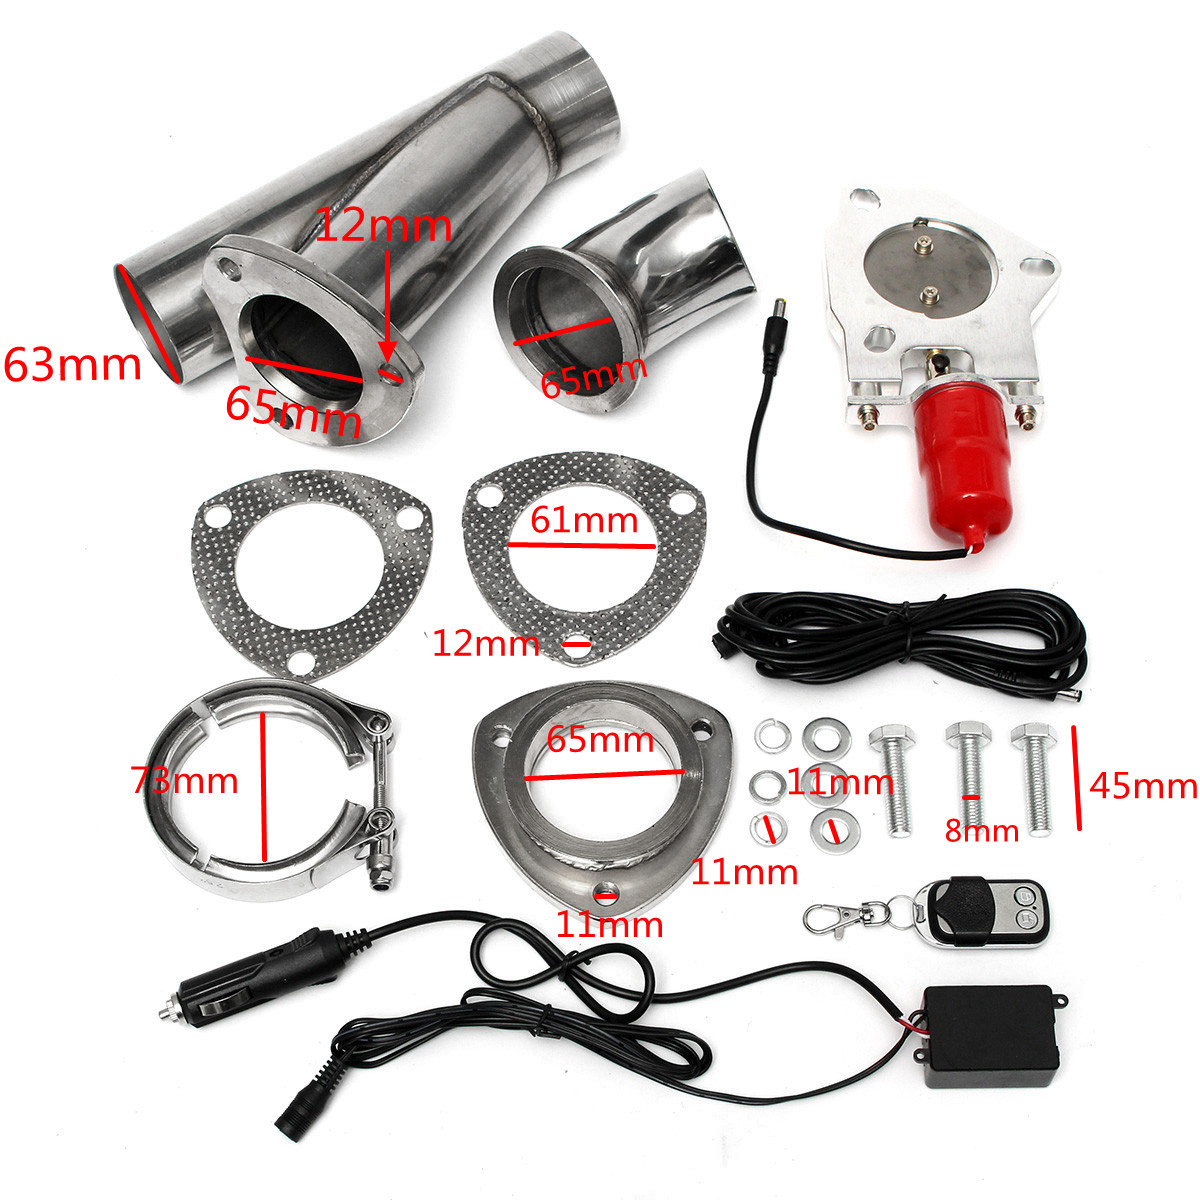 Electric Exhaust Valves Catback Downpipe Systems Kit Remote Intelligent E-Cut Muffler